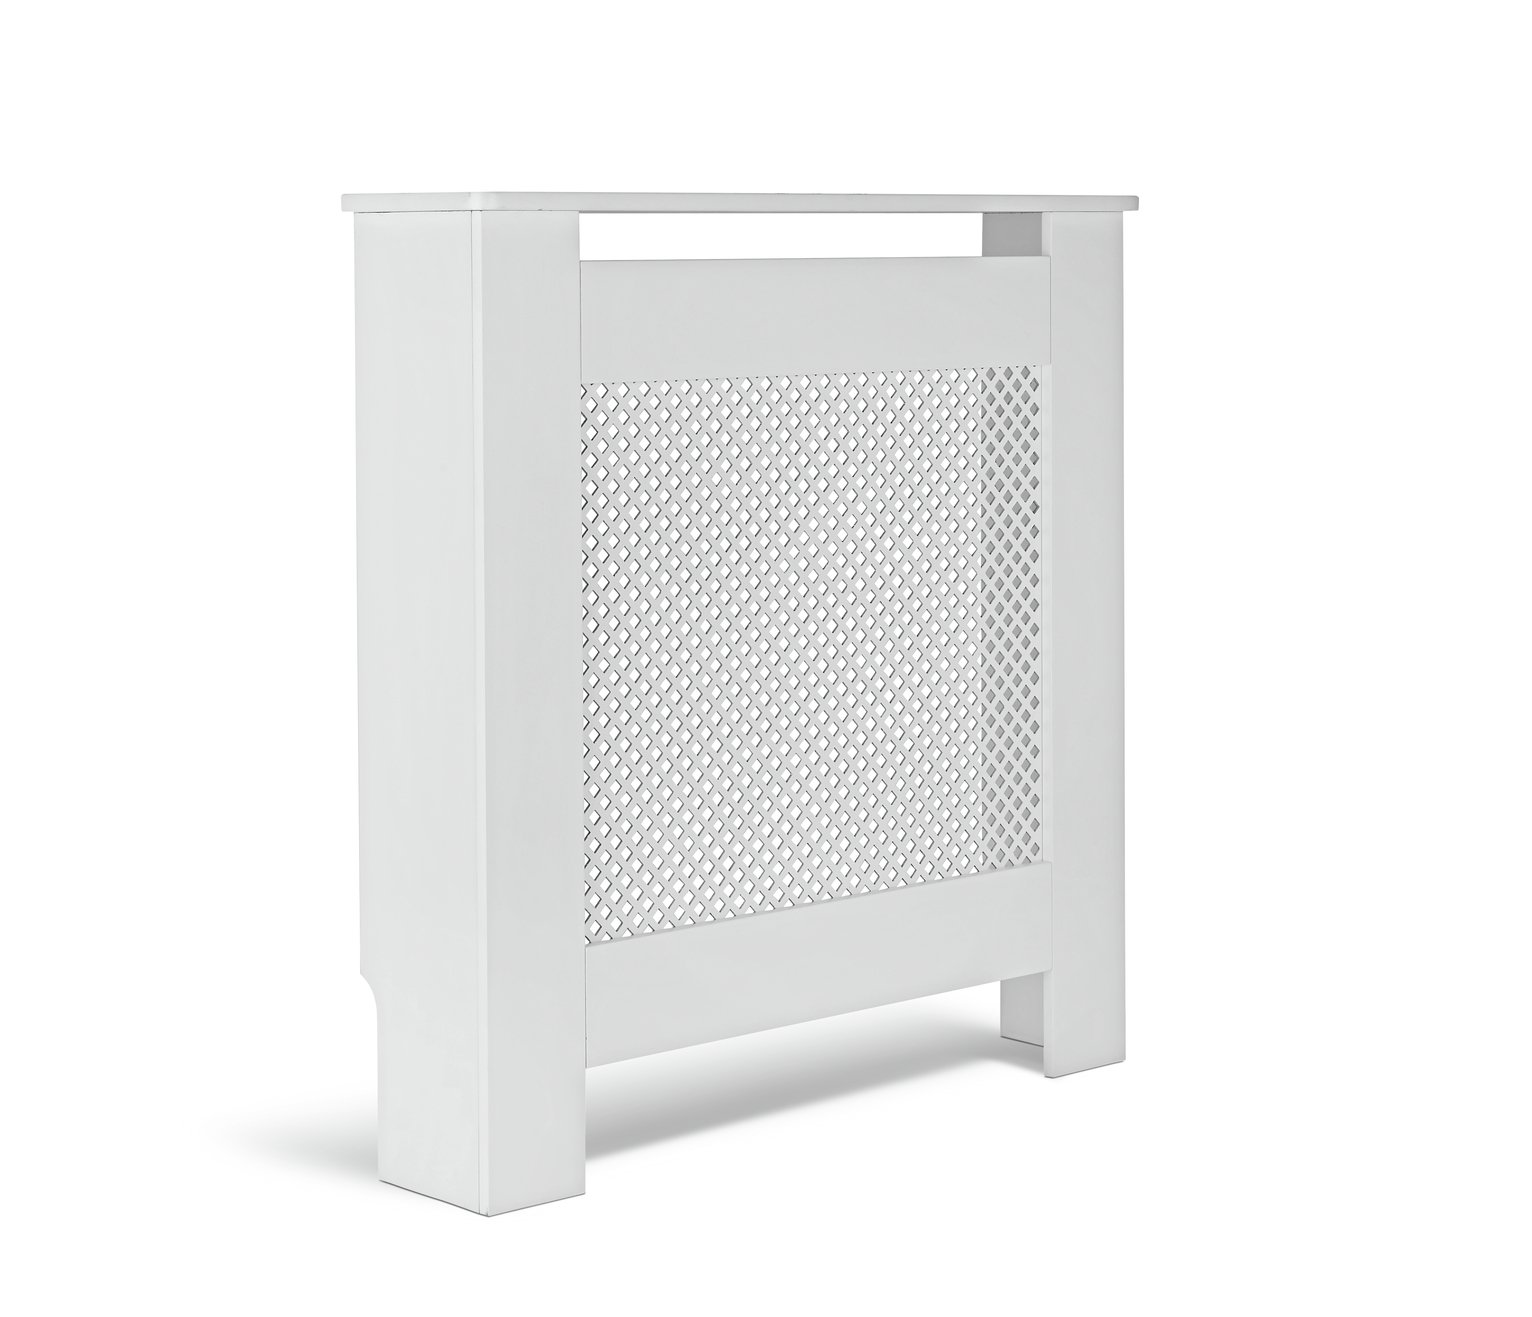 Argos Home Odell Mini Radiator Cover - White